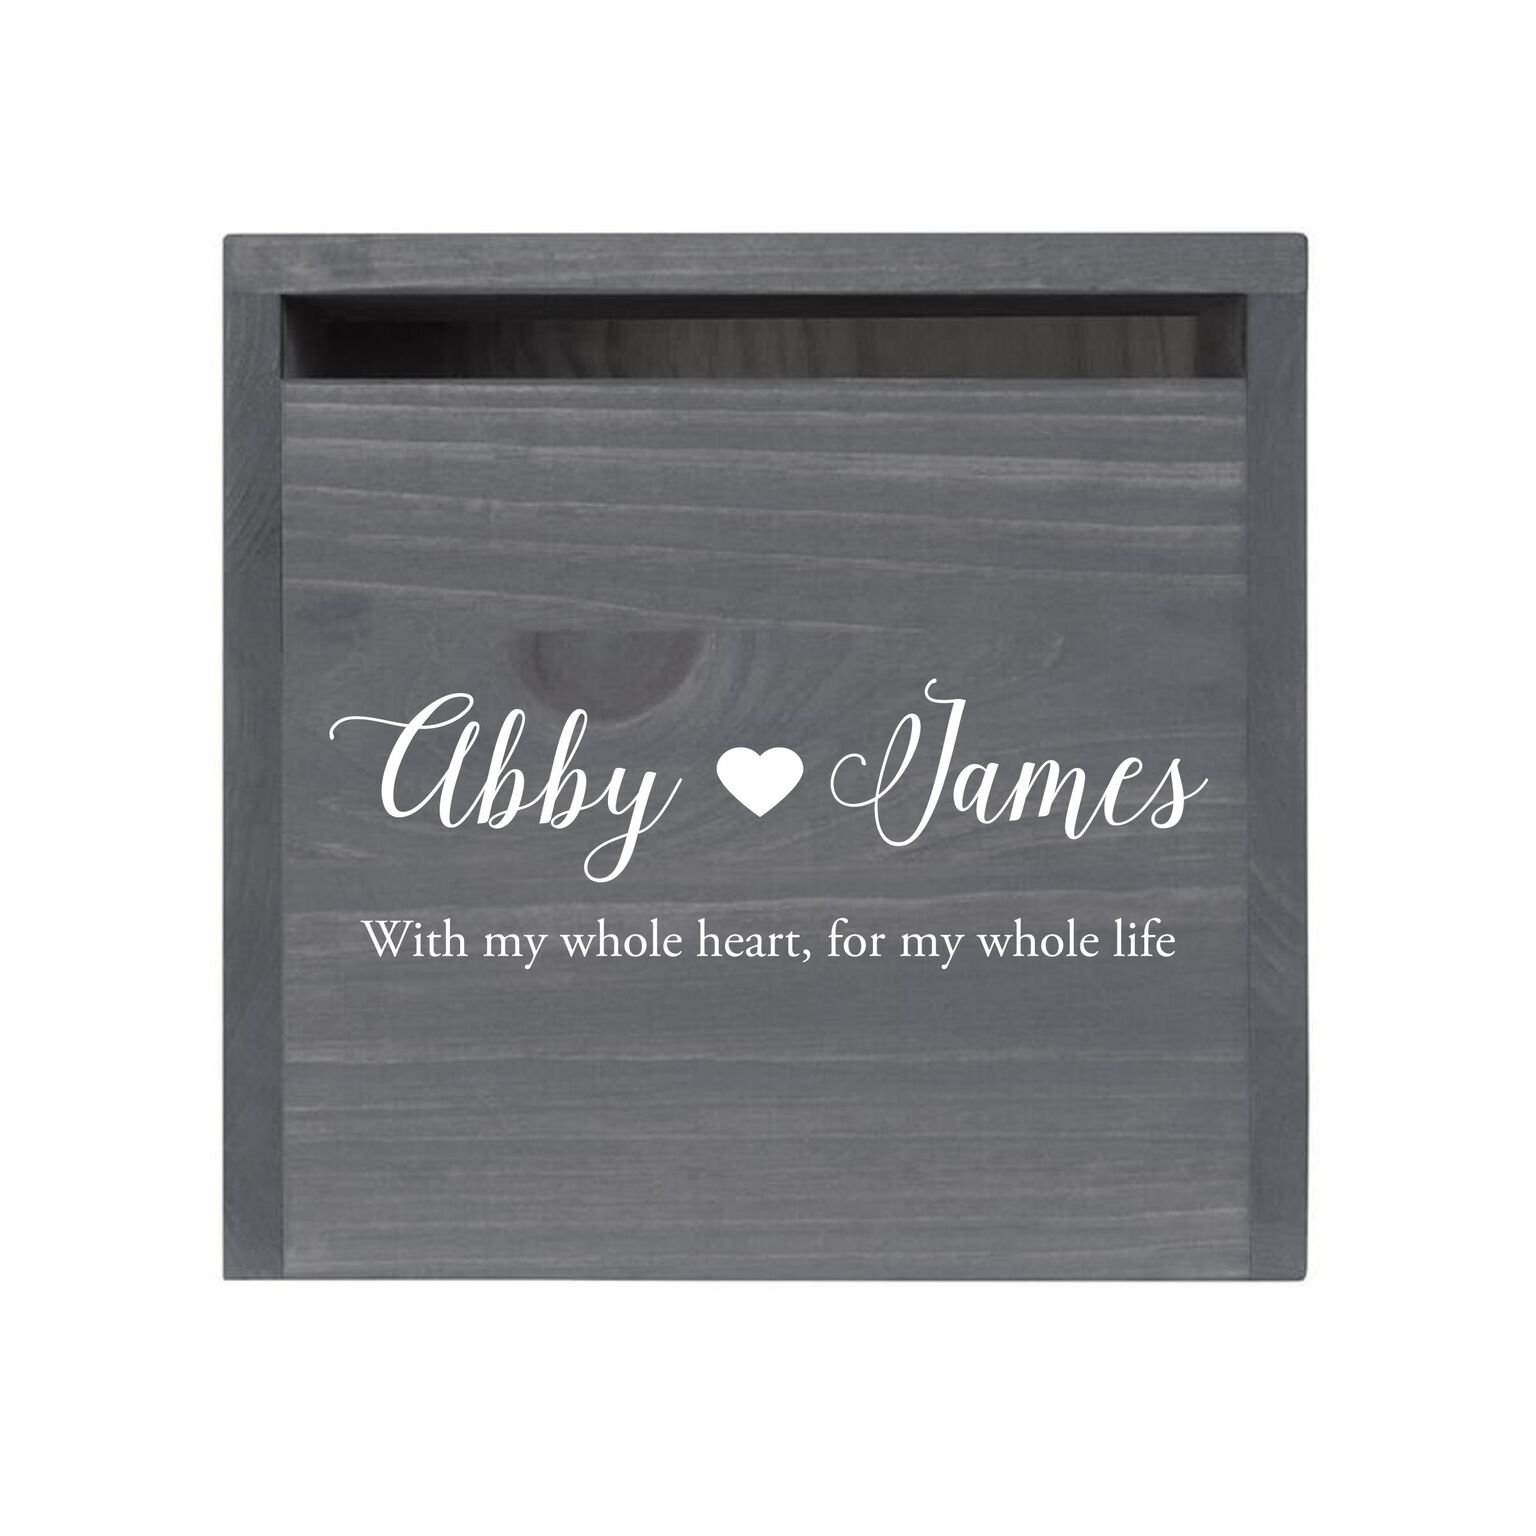 """LifeSong Milestones Personalized First Names with Heart Rustic Wooden Wedding Card Box Custom Card Holder with Front Slot for NewlyWeds Couples Reception 13.5"""" L x 12"""" W x 12.5"""" T (Grey)"""